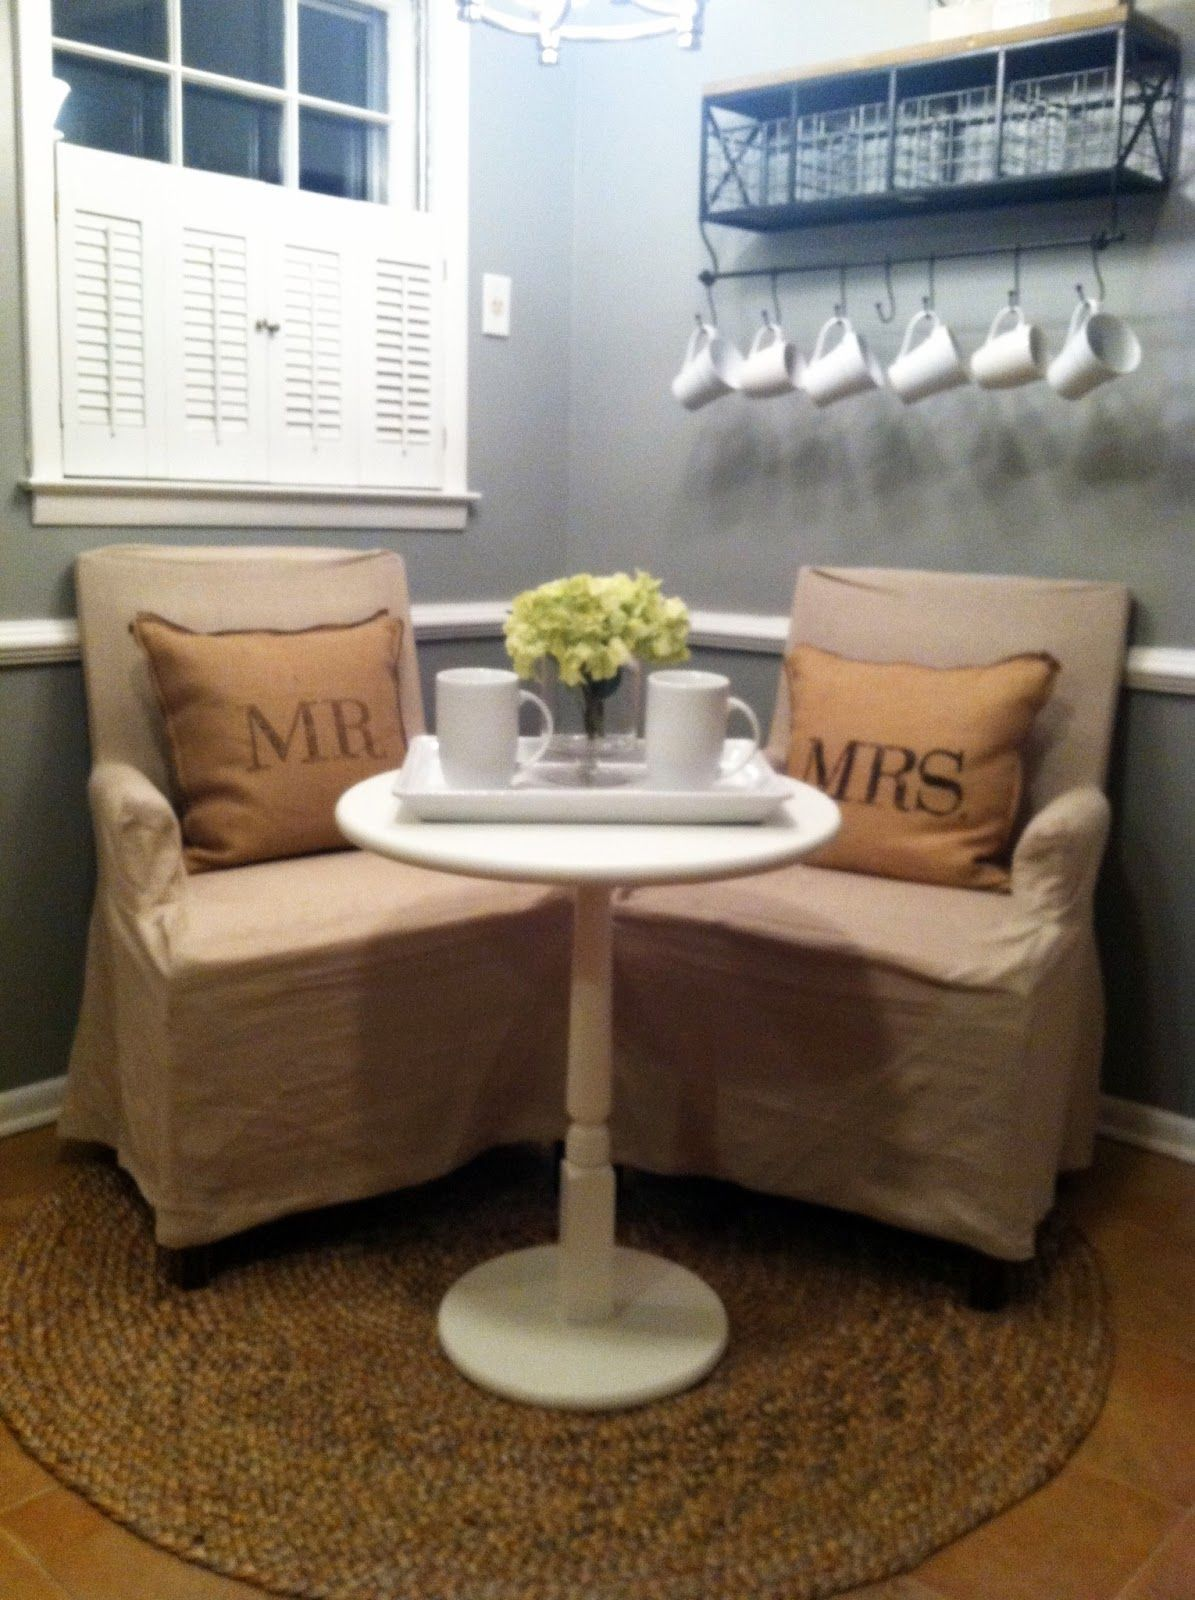 Would like a nice nook area in bedroom to relax i love the